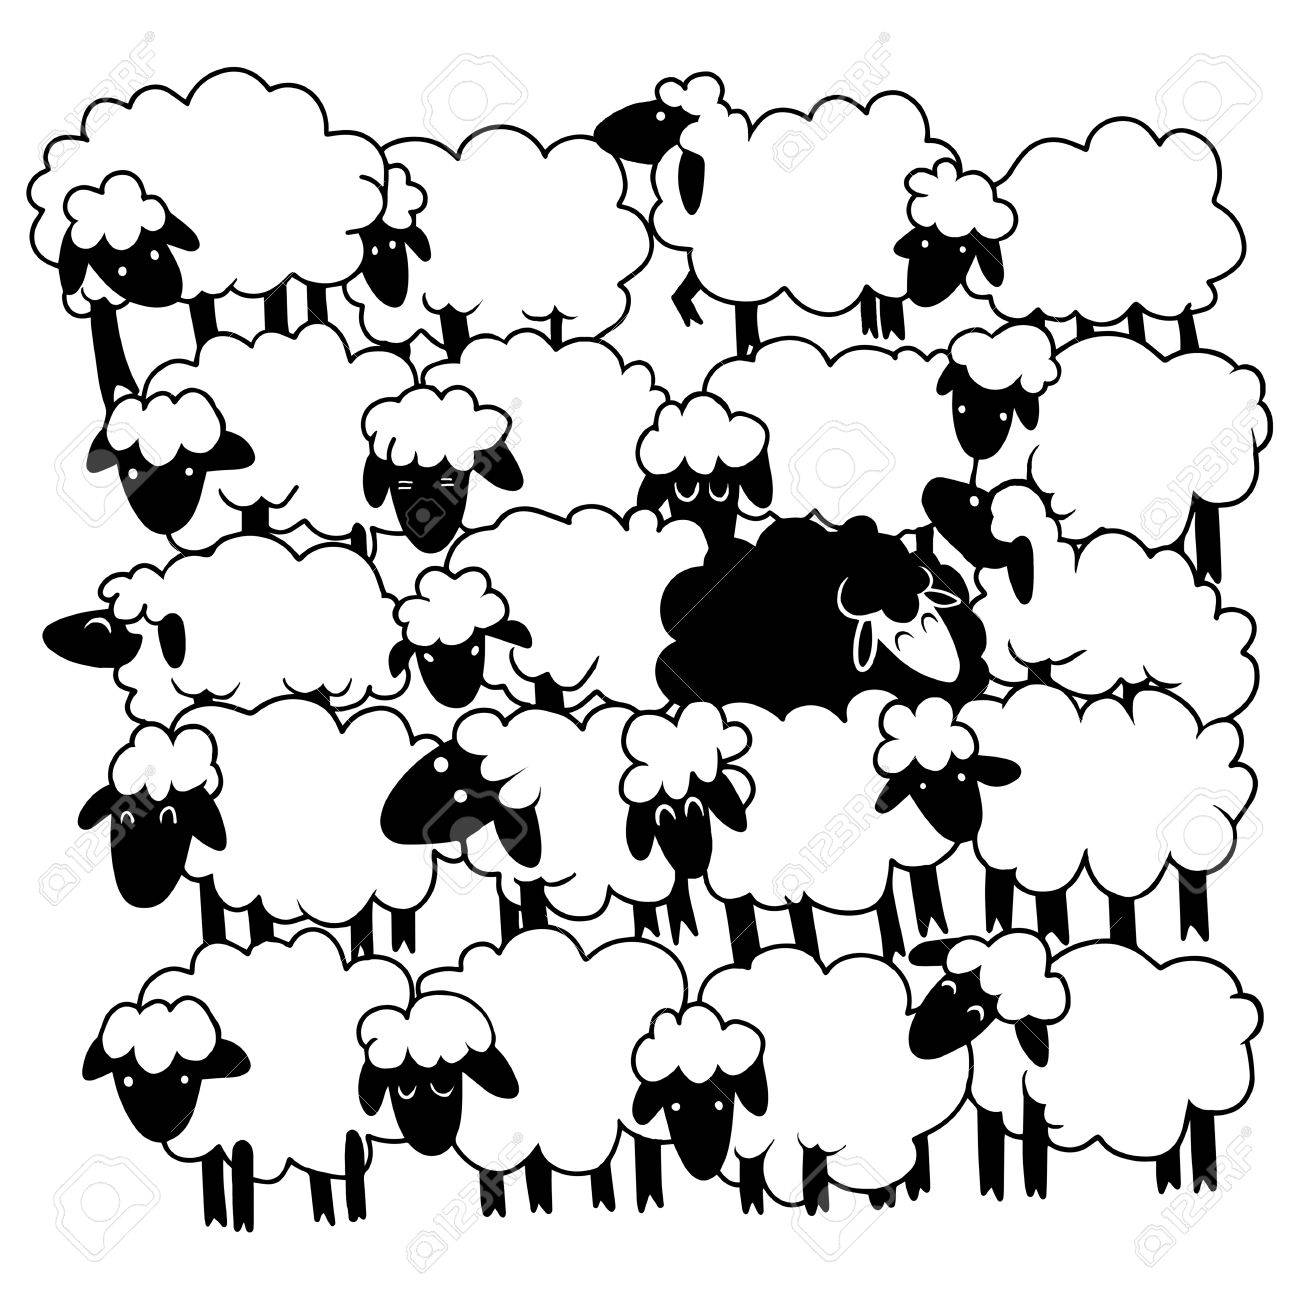 83946009-black-sheep-amongst-white-sheep_-single-black-sheep-in-white-sheep-group-dissimilar-concept-.jpg